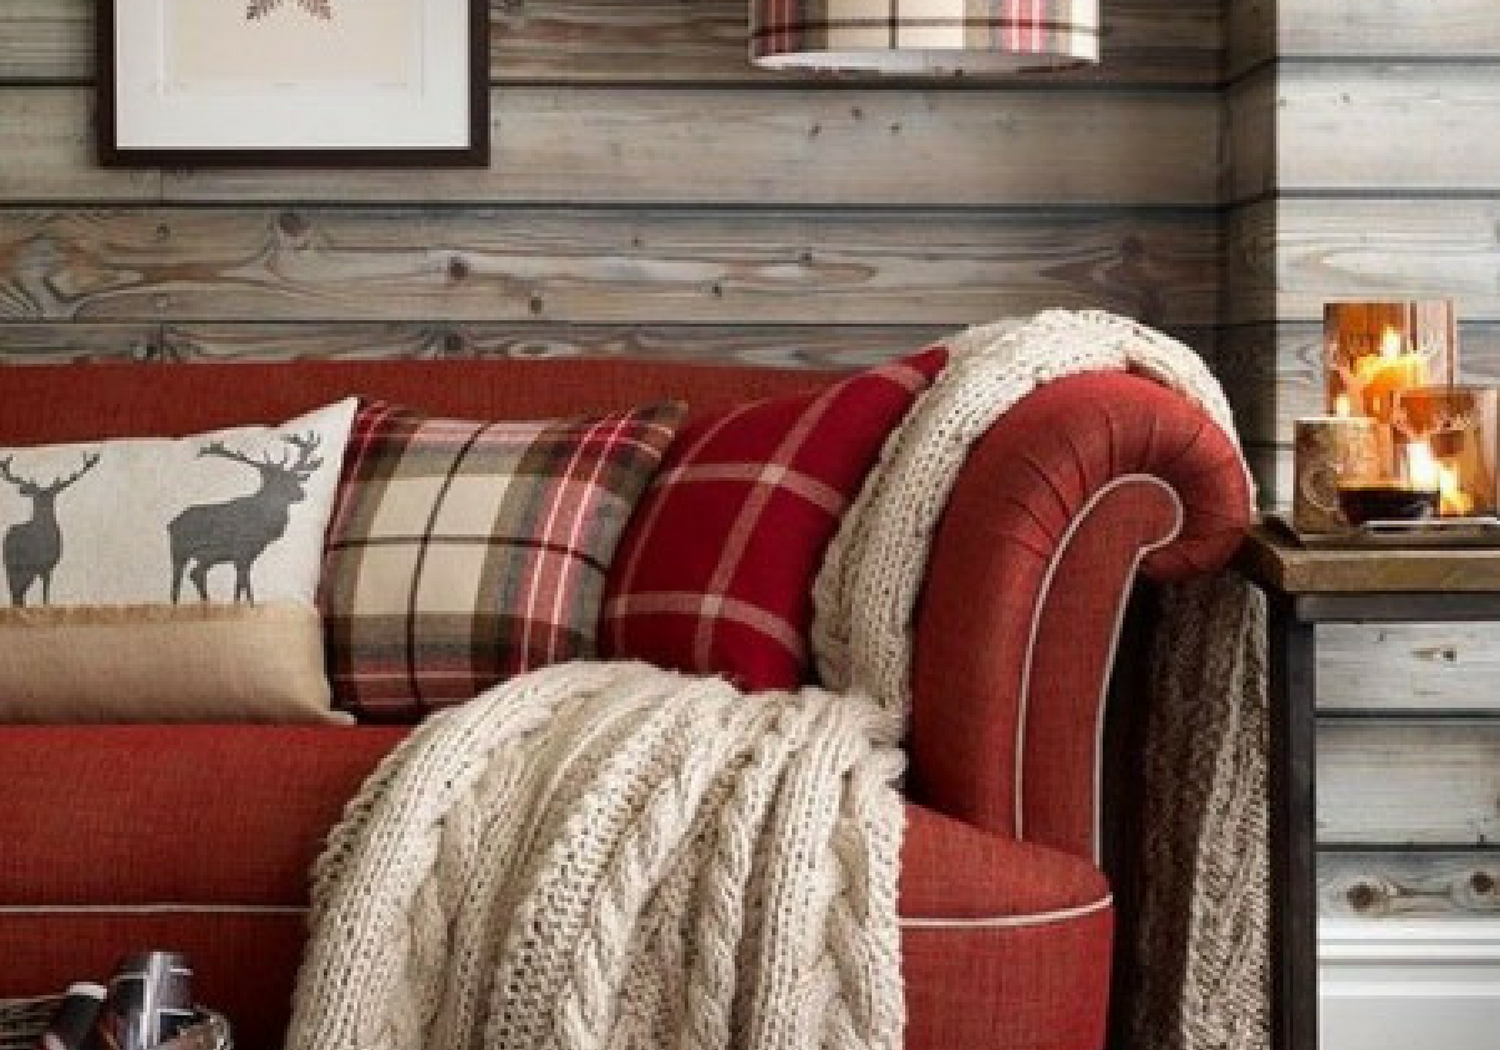 red living room couch with tartan plaid cushions